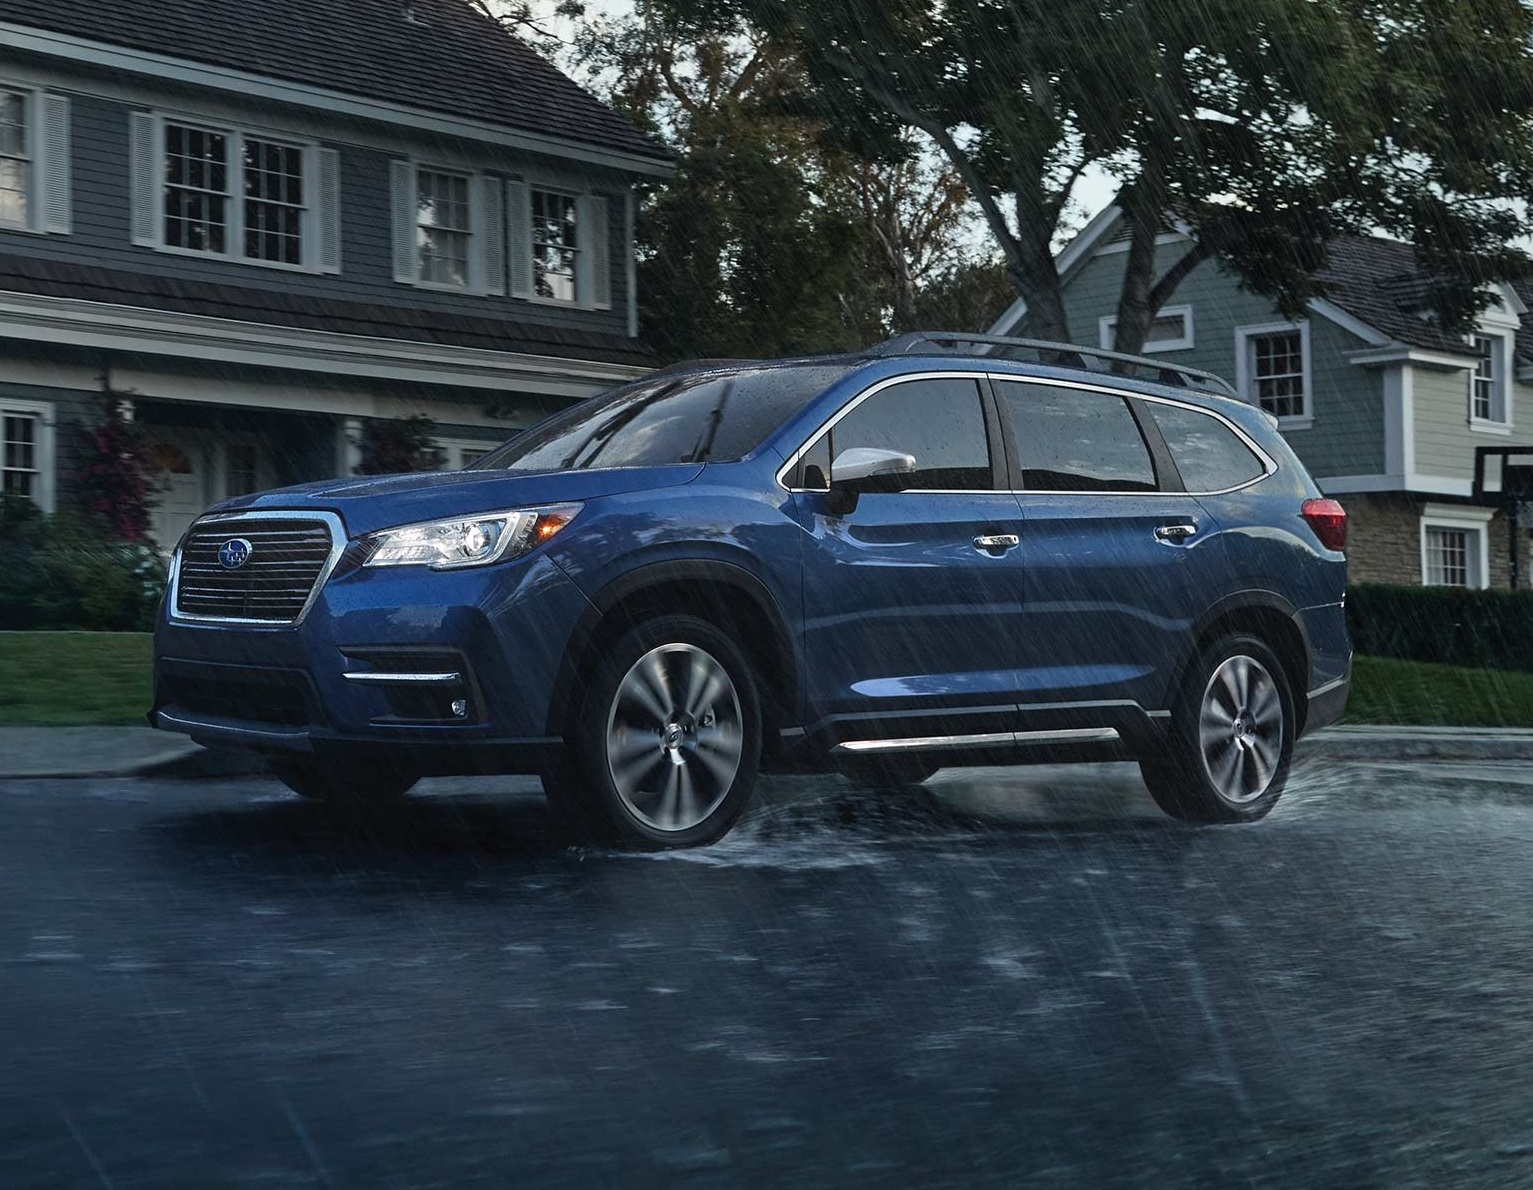 Subaru dealership near me Detroit MI - 2019 Subaru Ascent